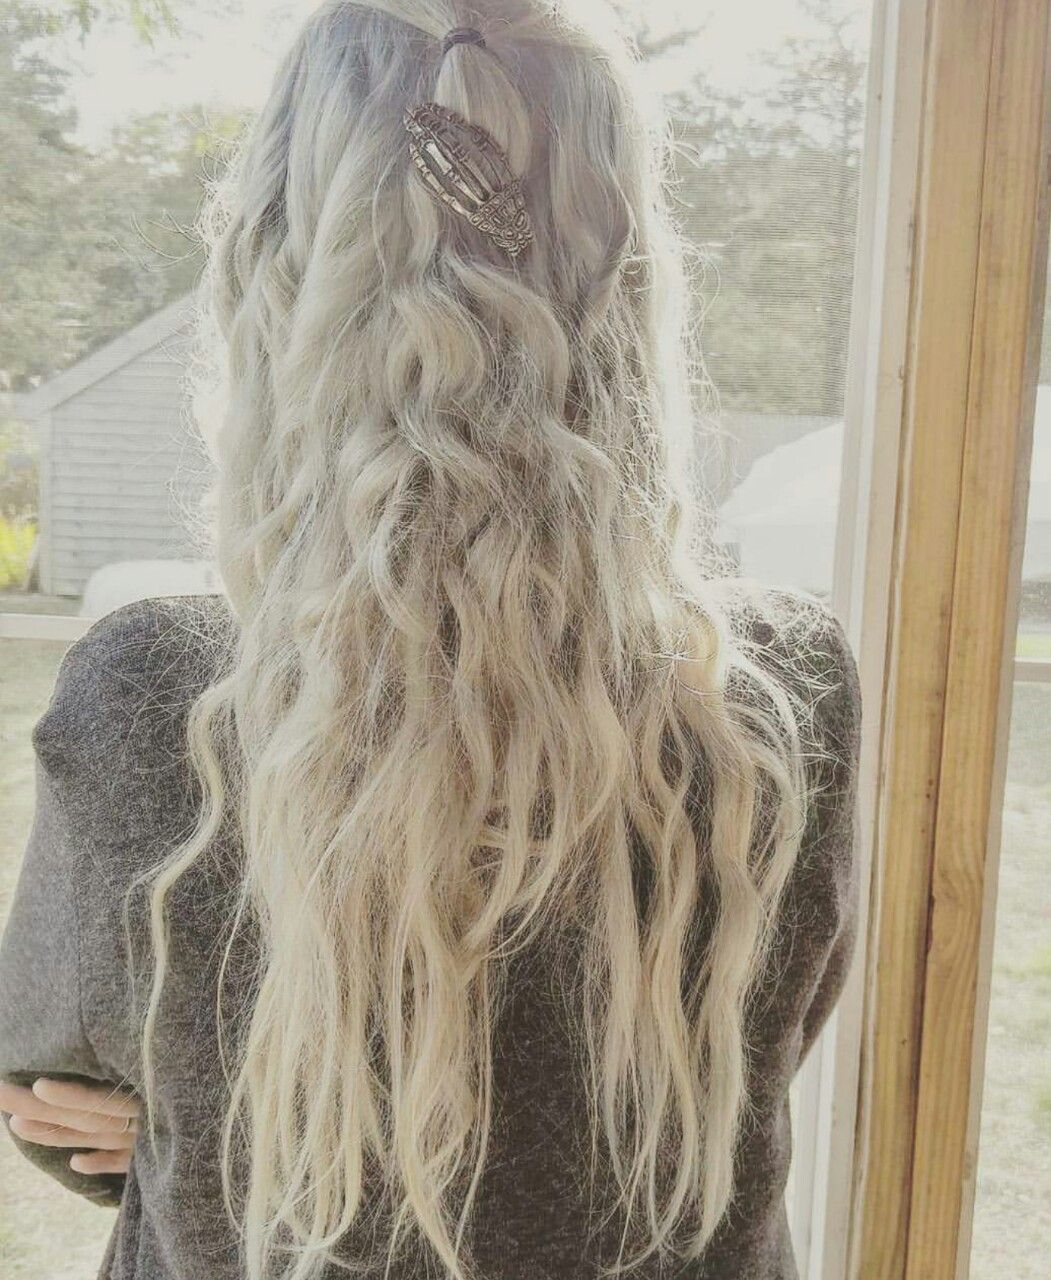 Welcome to Lovely Dyed Locks! This blog features all sorts of styles, colors, and types of hair....